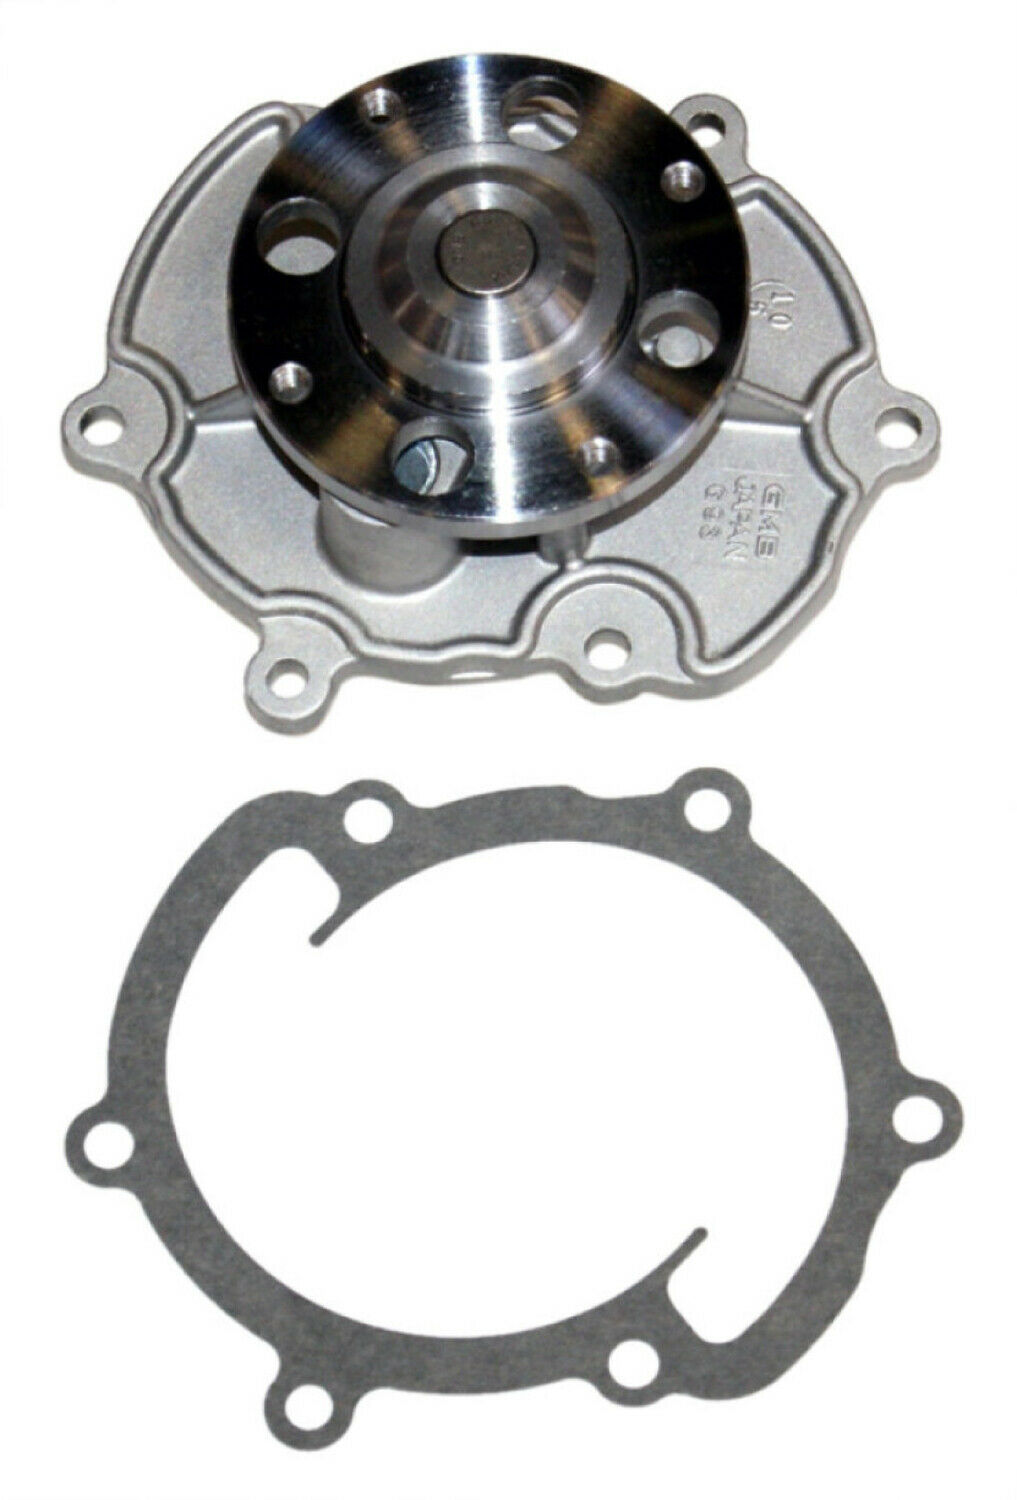 Engine Water Pump GMB 130-5130